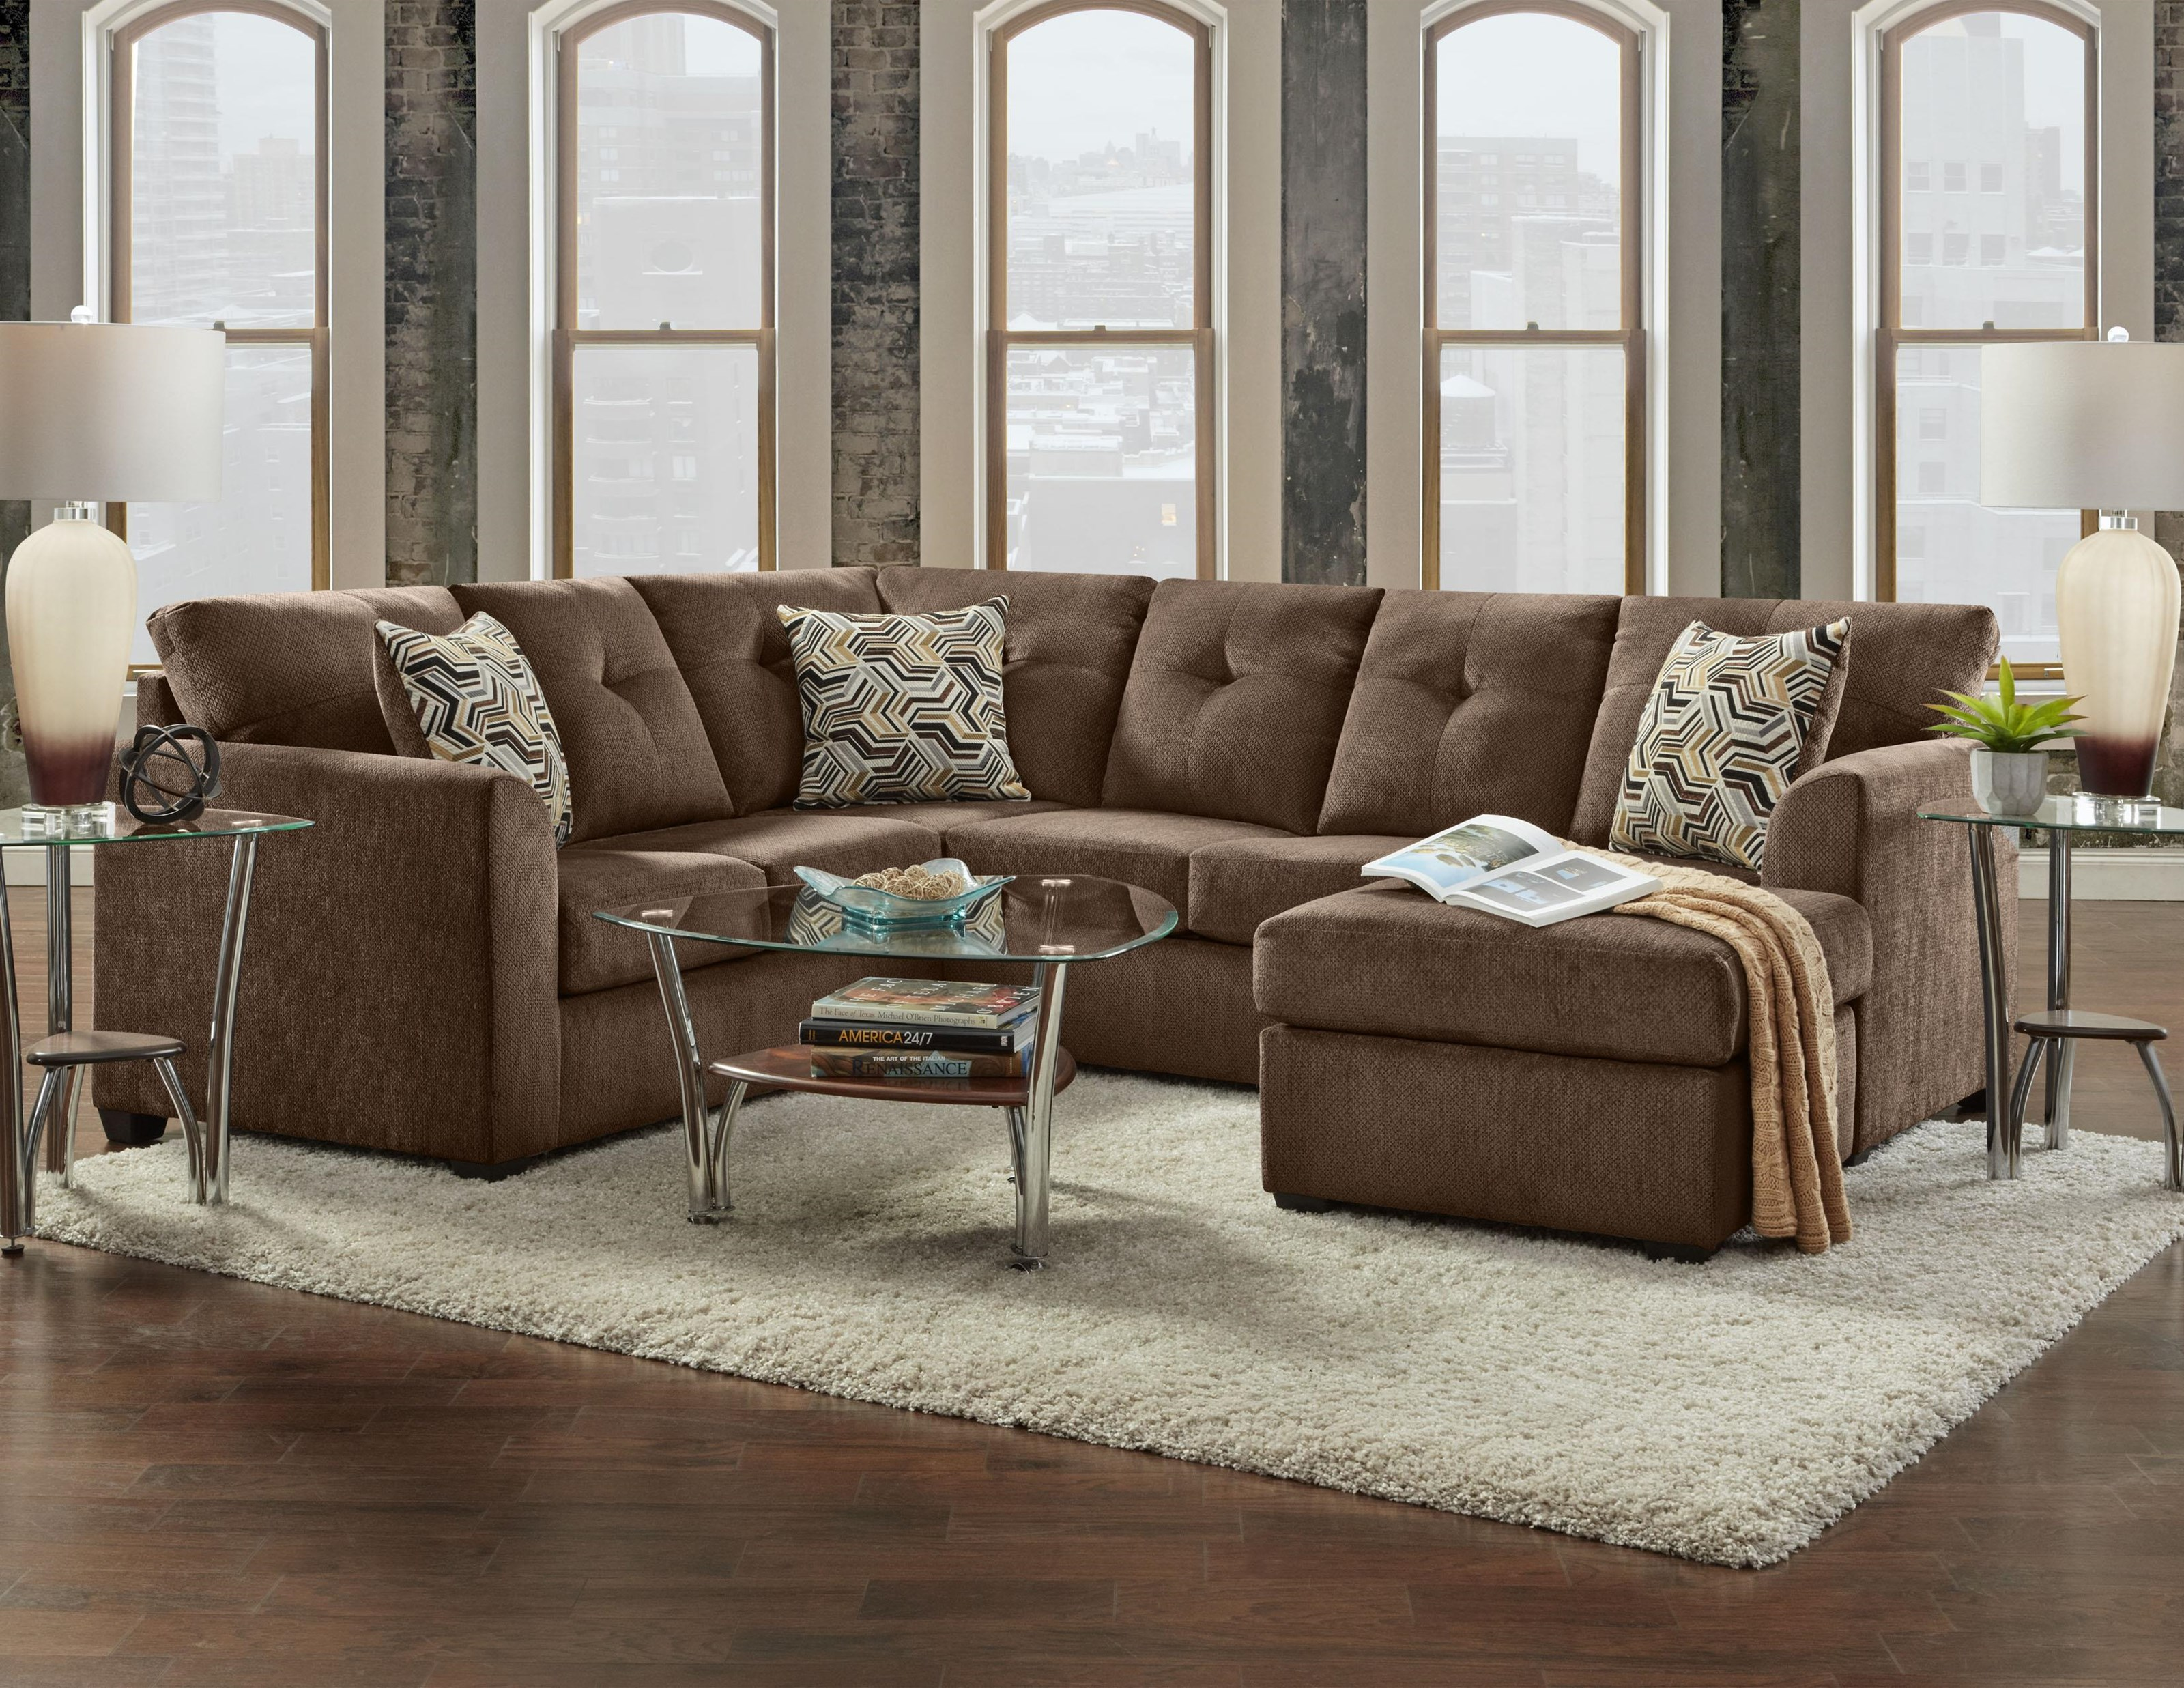 3900 2 Piece Sectional by Washington Furniture at VanDrie Home Furnishings